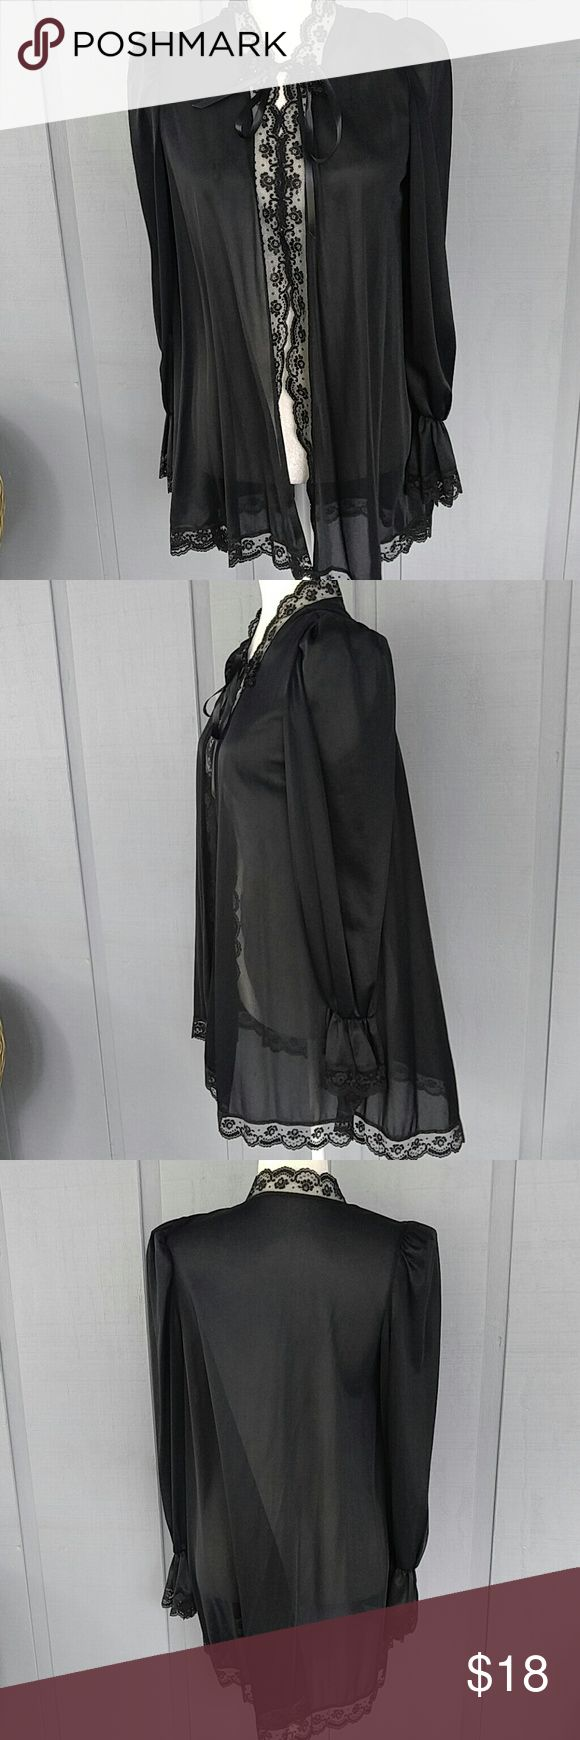 Vintage black short robe by Petra Fashions Short robe that ties with ribbon.  Has beautiful bell sleeves condition is mint Petra Fashions Intimates & Sleepwear Robes